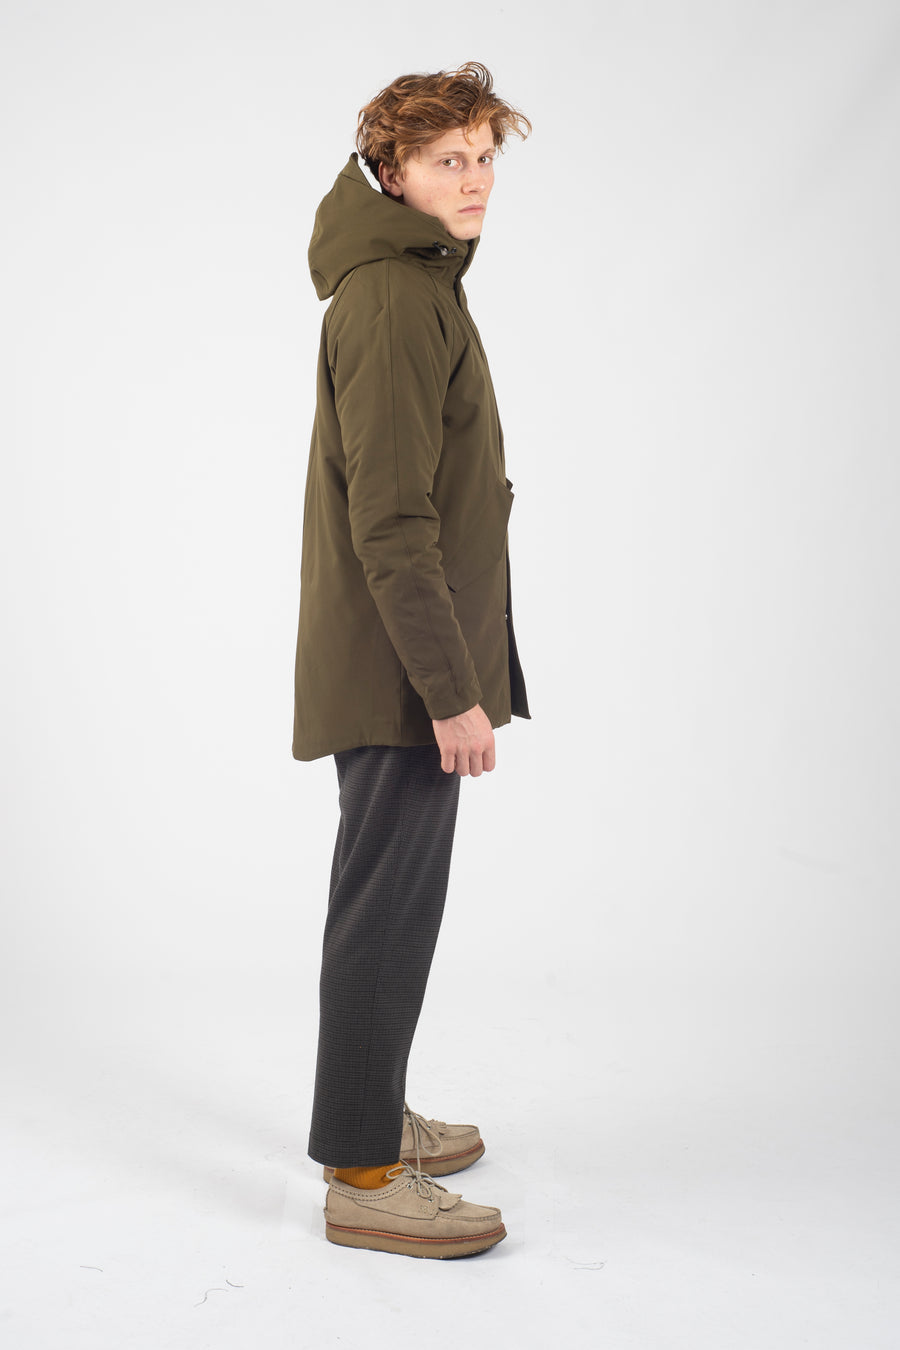 Marinero Parka Berlingo Army - Welter Shelter - Waterproof, Windproof, breathable Packable